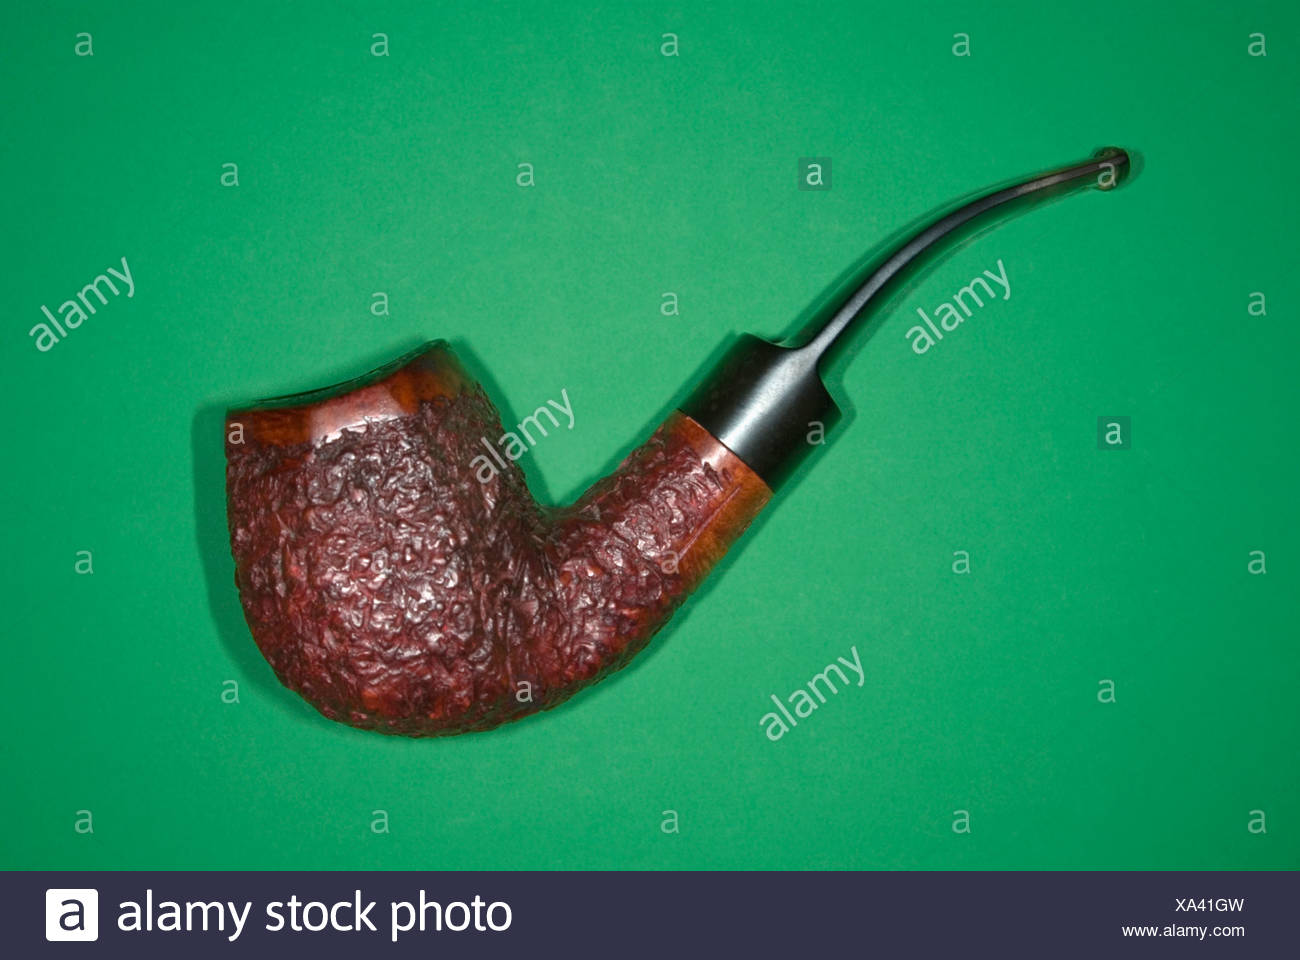 Tobacco Pipe, elevated view - Stock Image